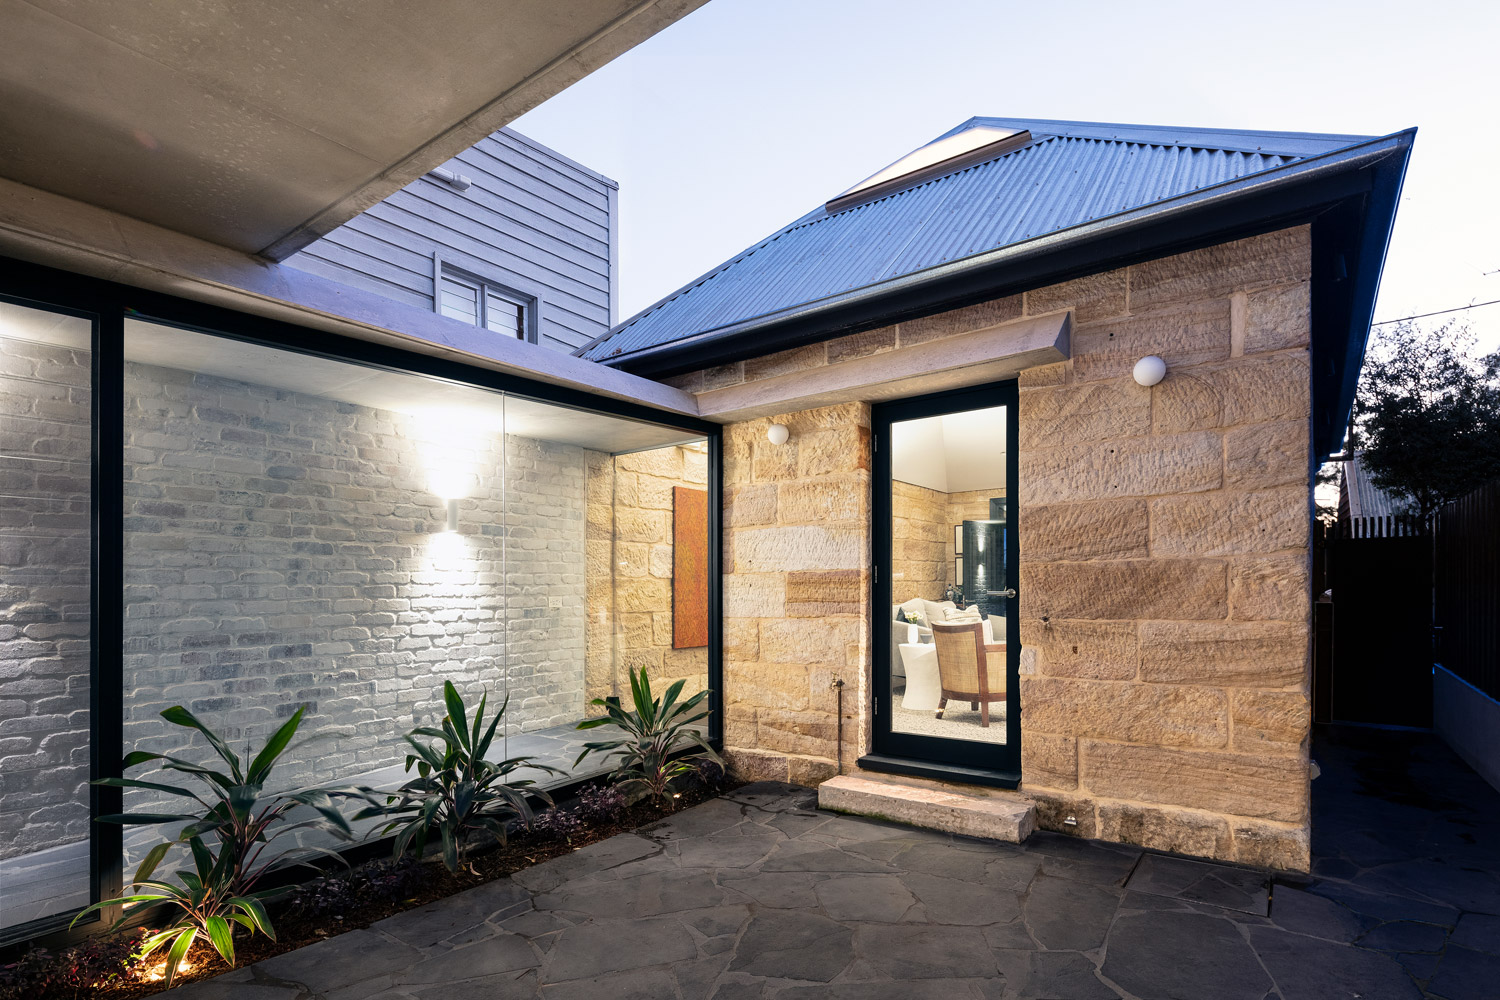 They Had Always Planned To Move To The Suburb Of East Balmain At Some Point In Their Life And Were Excited To Engage Benn + Penna And Newmark Constructions To